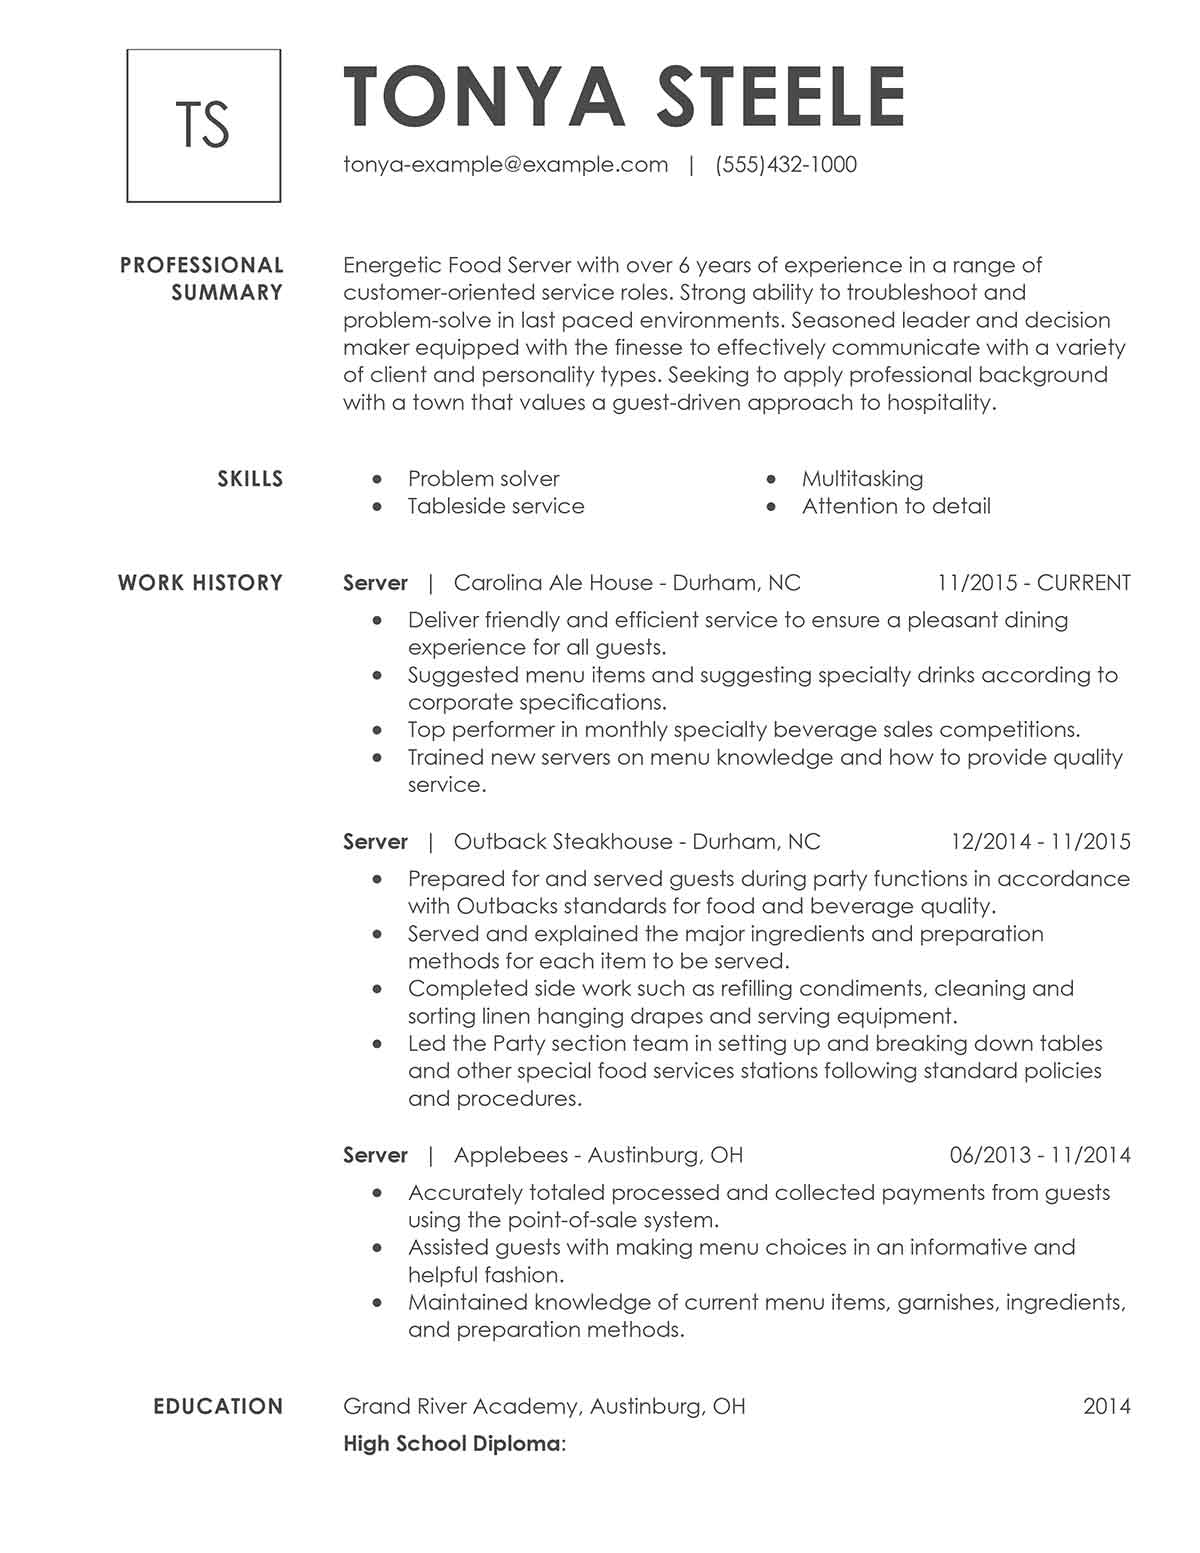 how to describe a serving job on a resume examples